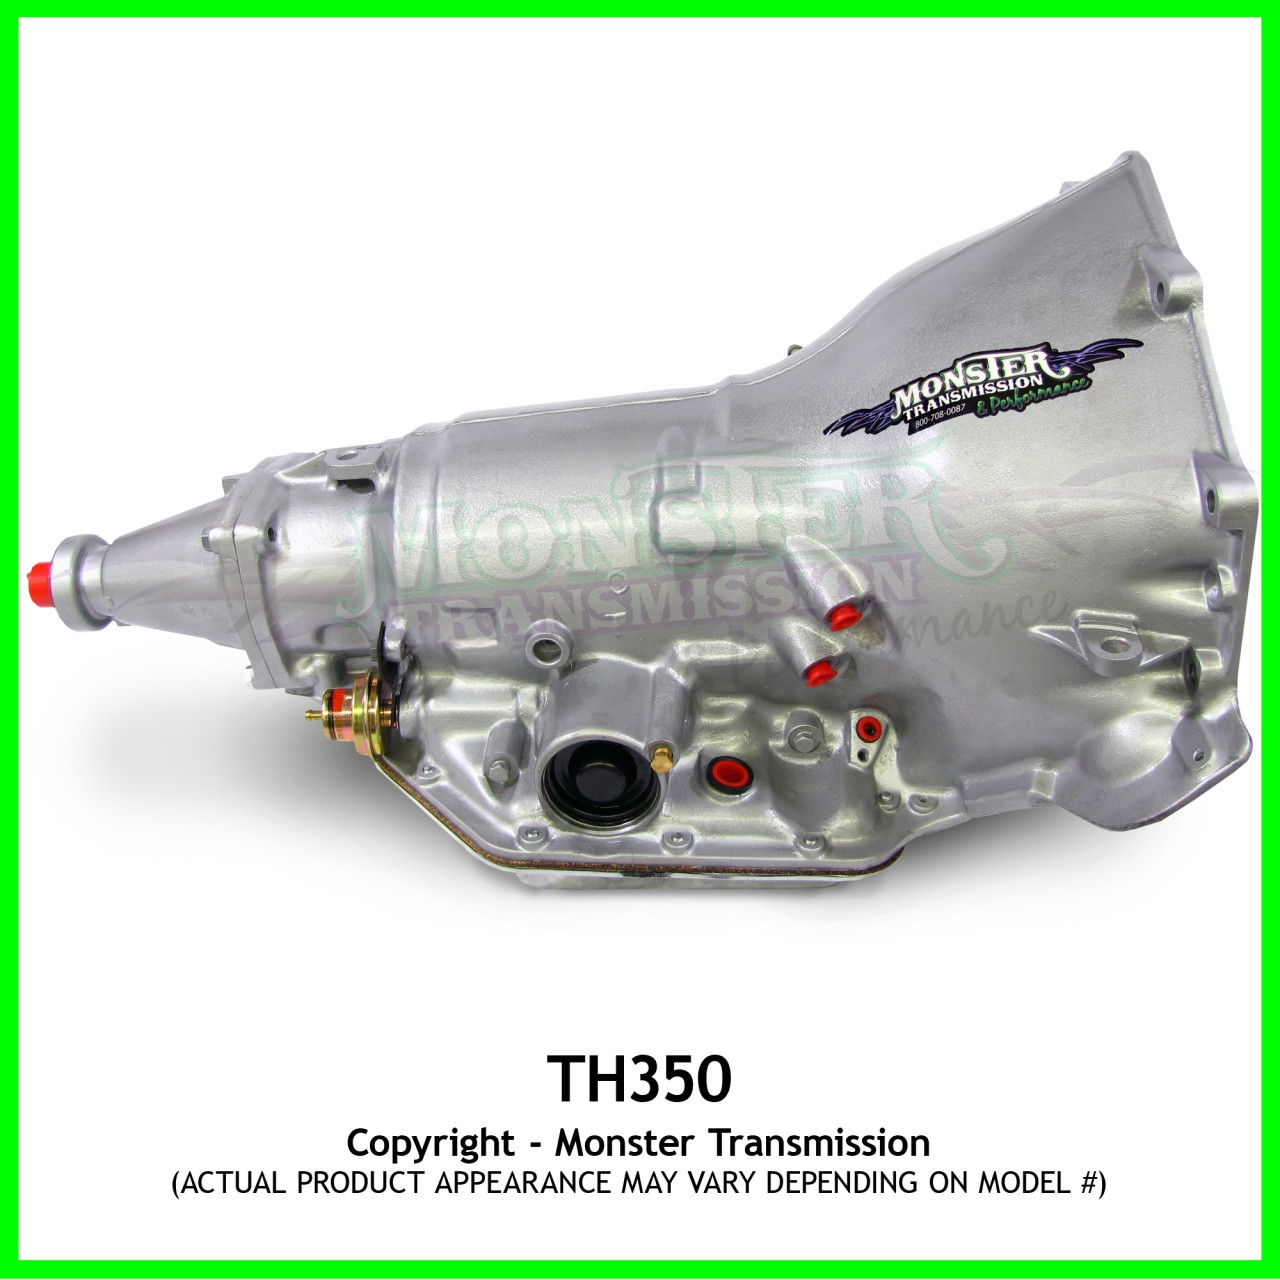 350 automatic transmission parts diagram 1978 vw bus wiring chevy turbo 400 html autos post